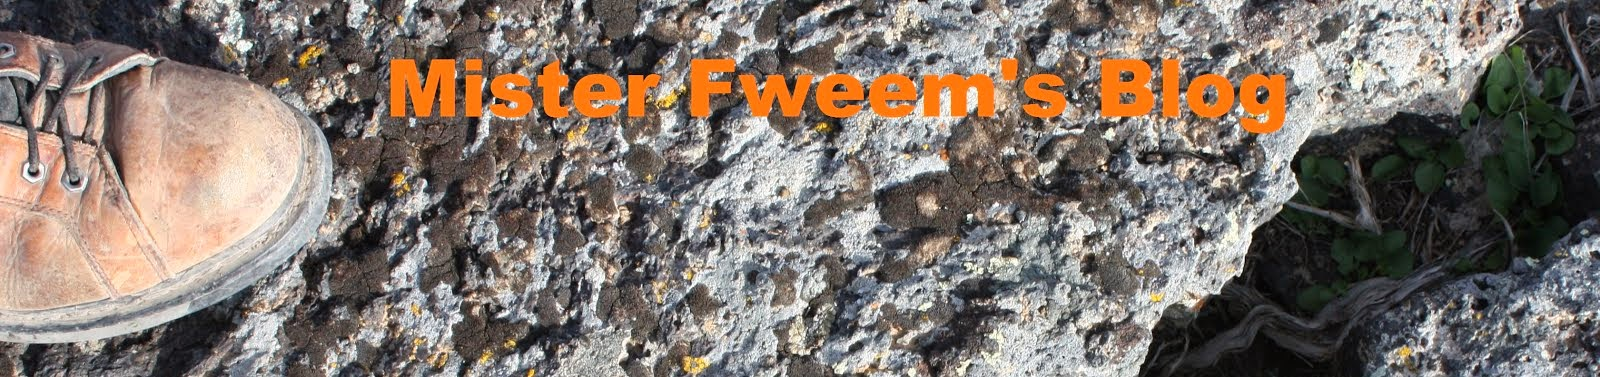 Mister Fweem's Blog